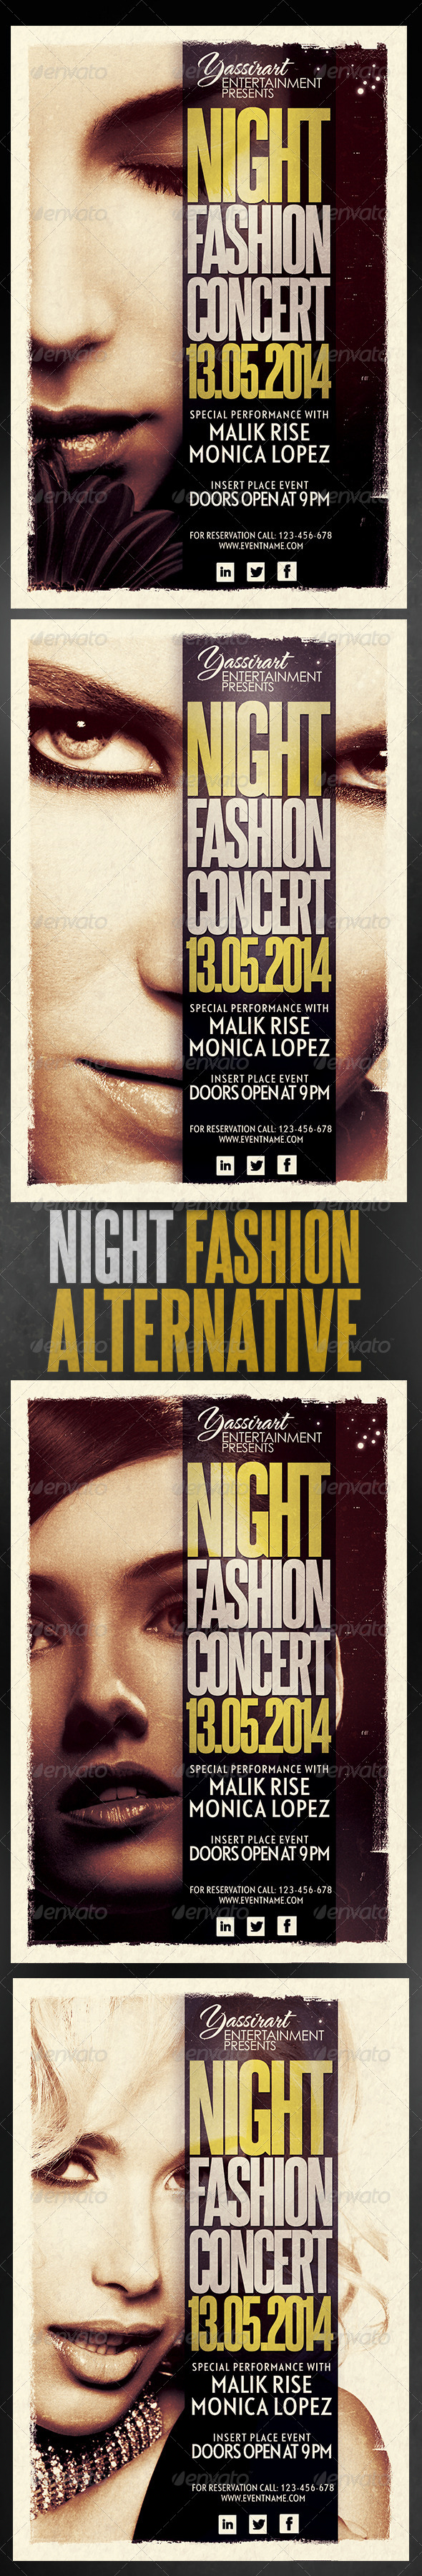 GraphicRiver Night Fashion Concert Flyer Template 5966556